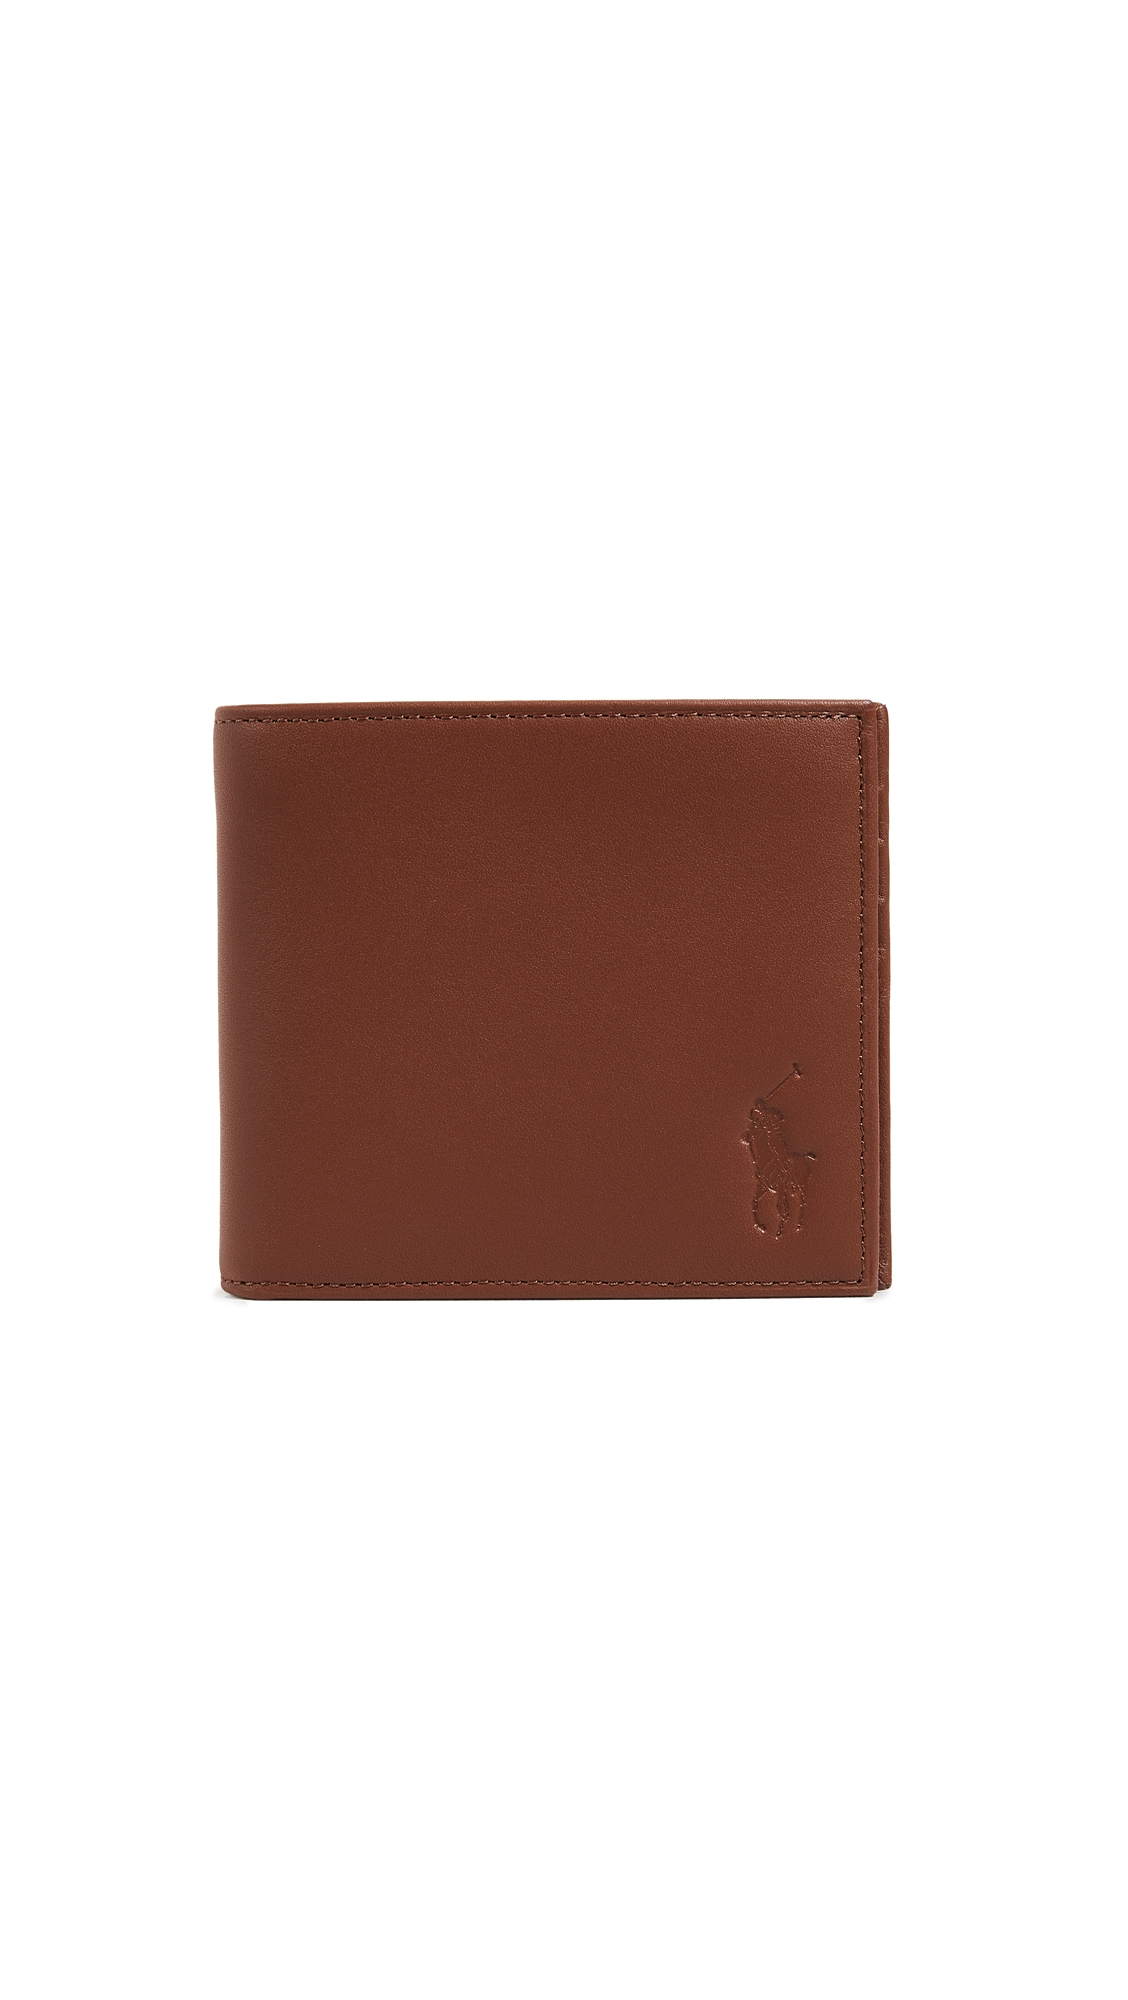 POLO RALPH LAUREN SMOOTH LEATHER INTERIOR MOTIF WALLET